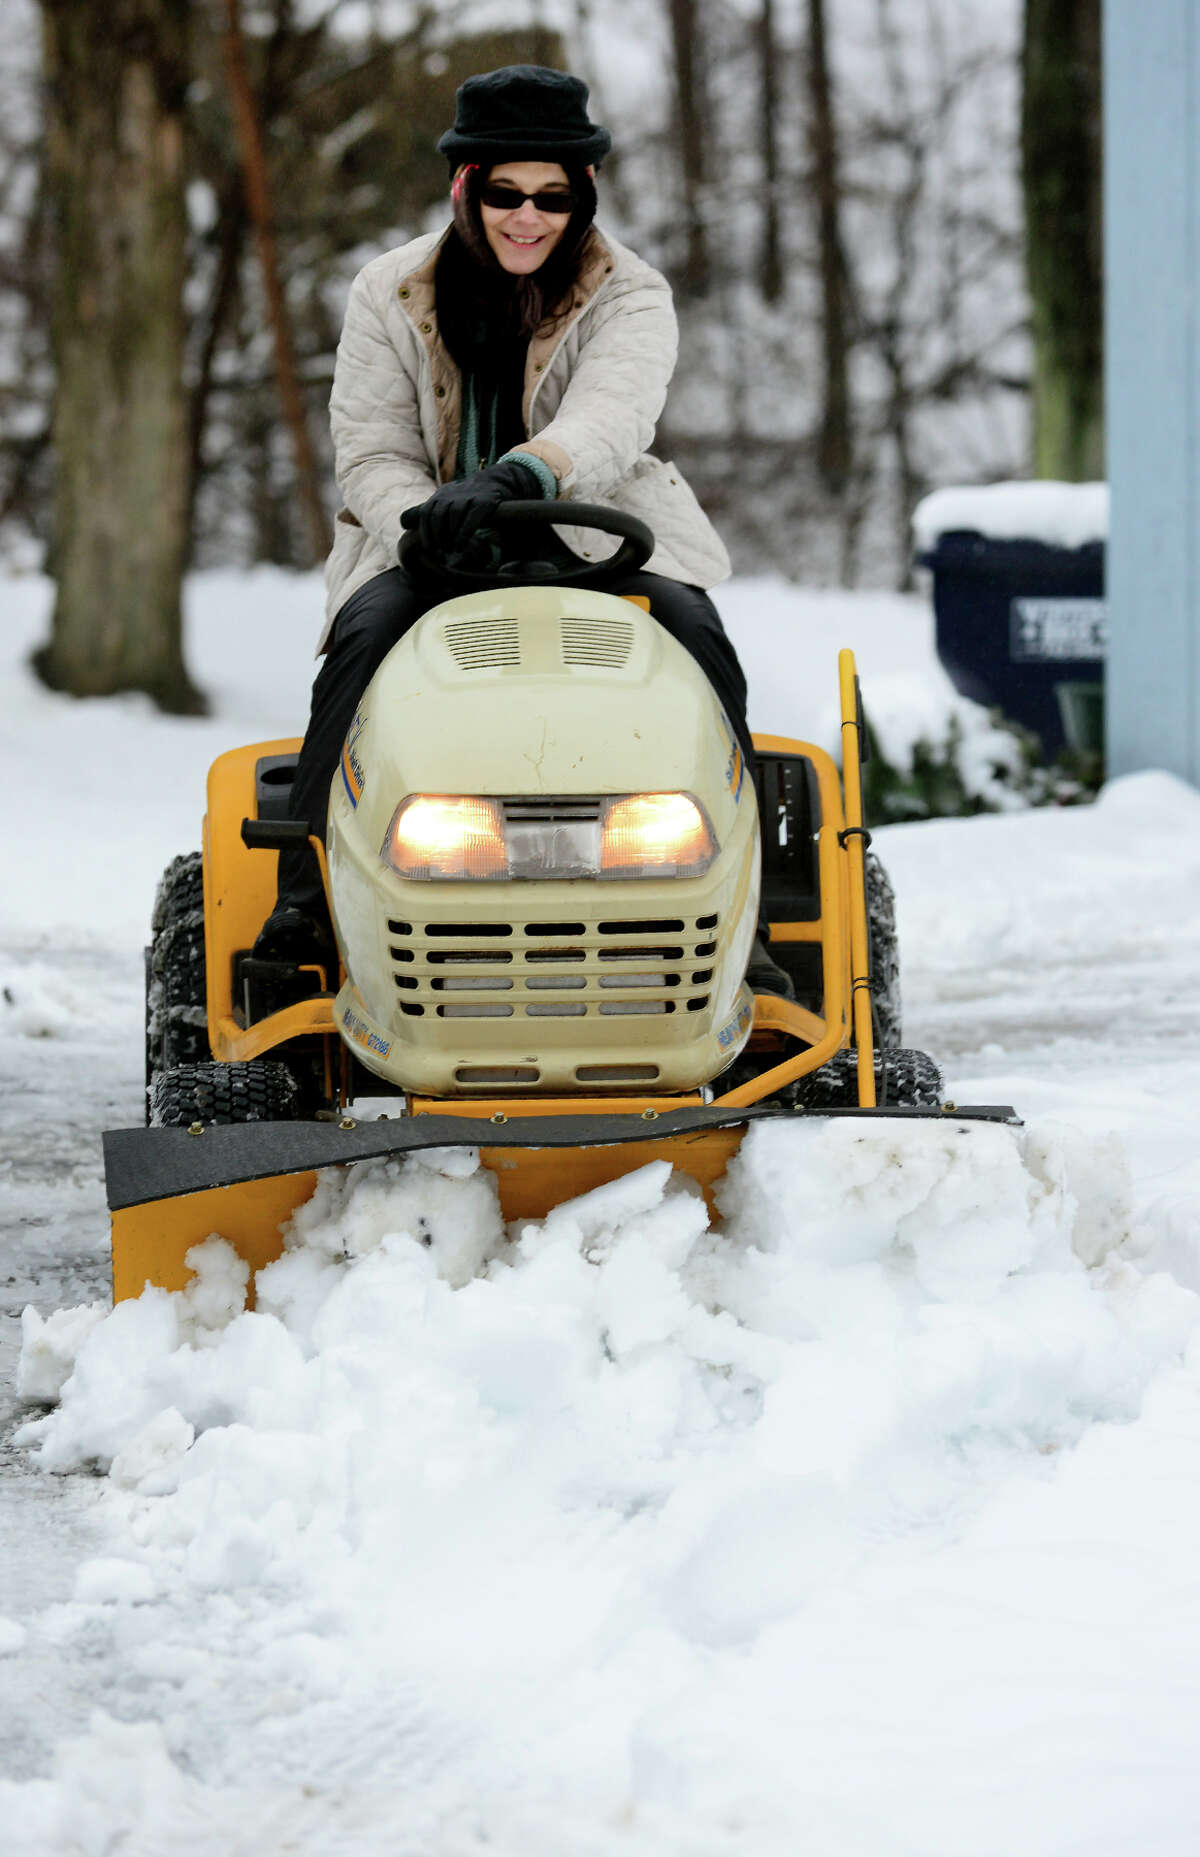 Donna Cherhoniak plows snow with her Cub Cadet plow at her home along Derby Avenue in Seymour, Conn. on Saturday Jan. 24, 2015. Cherhoniak said she got the plow on Craigslist with every attachment available and this was the first time she got to use it.